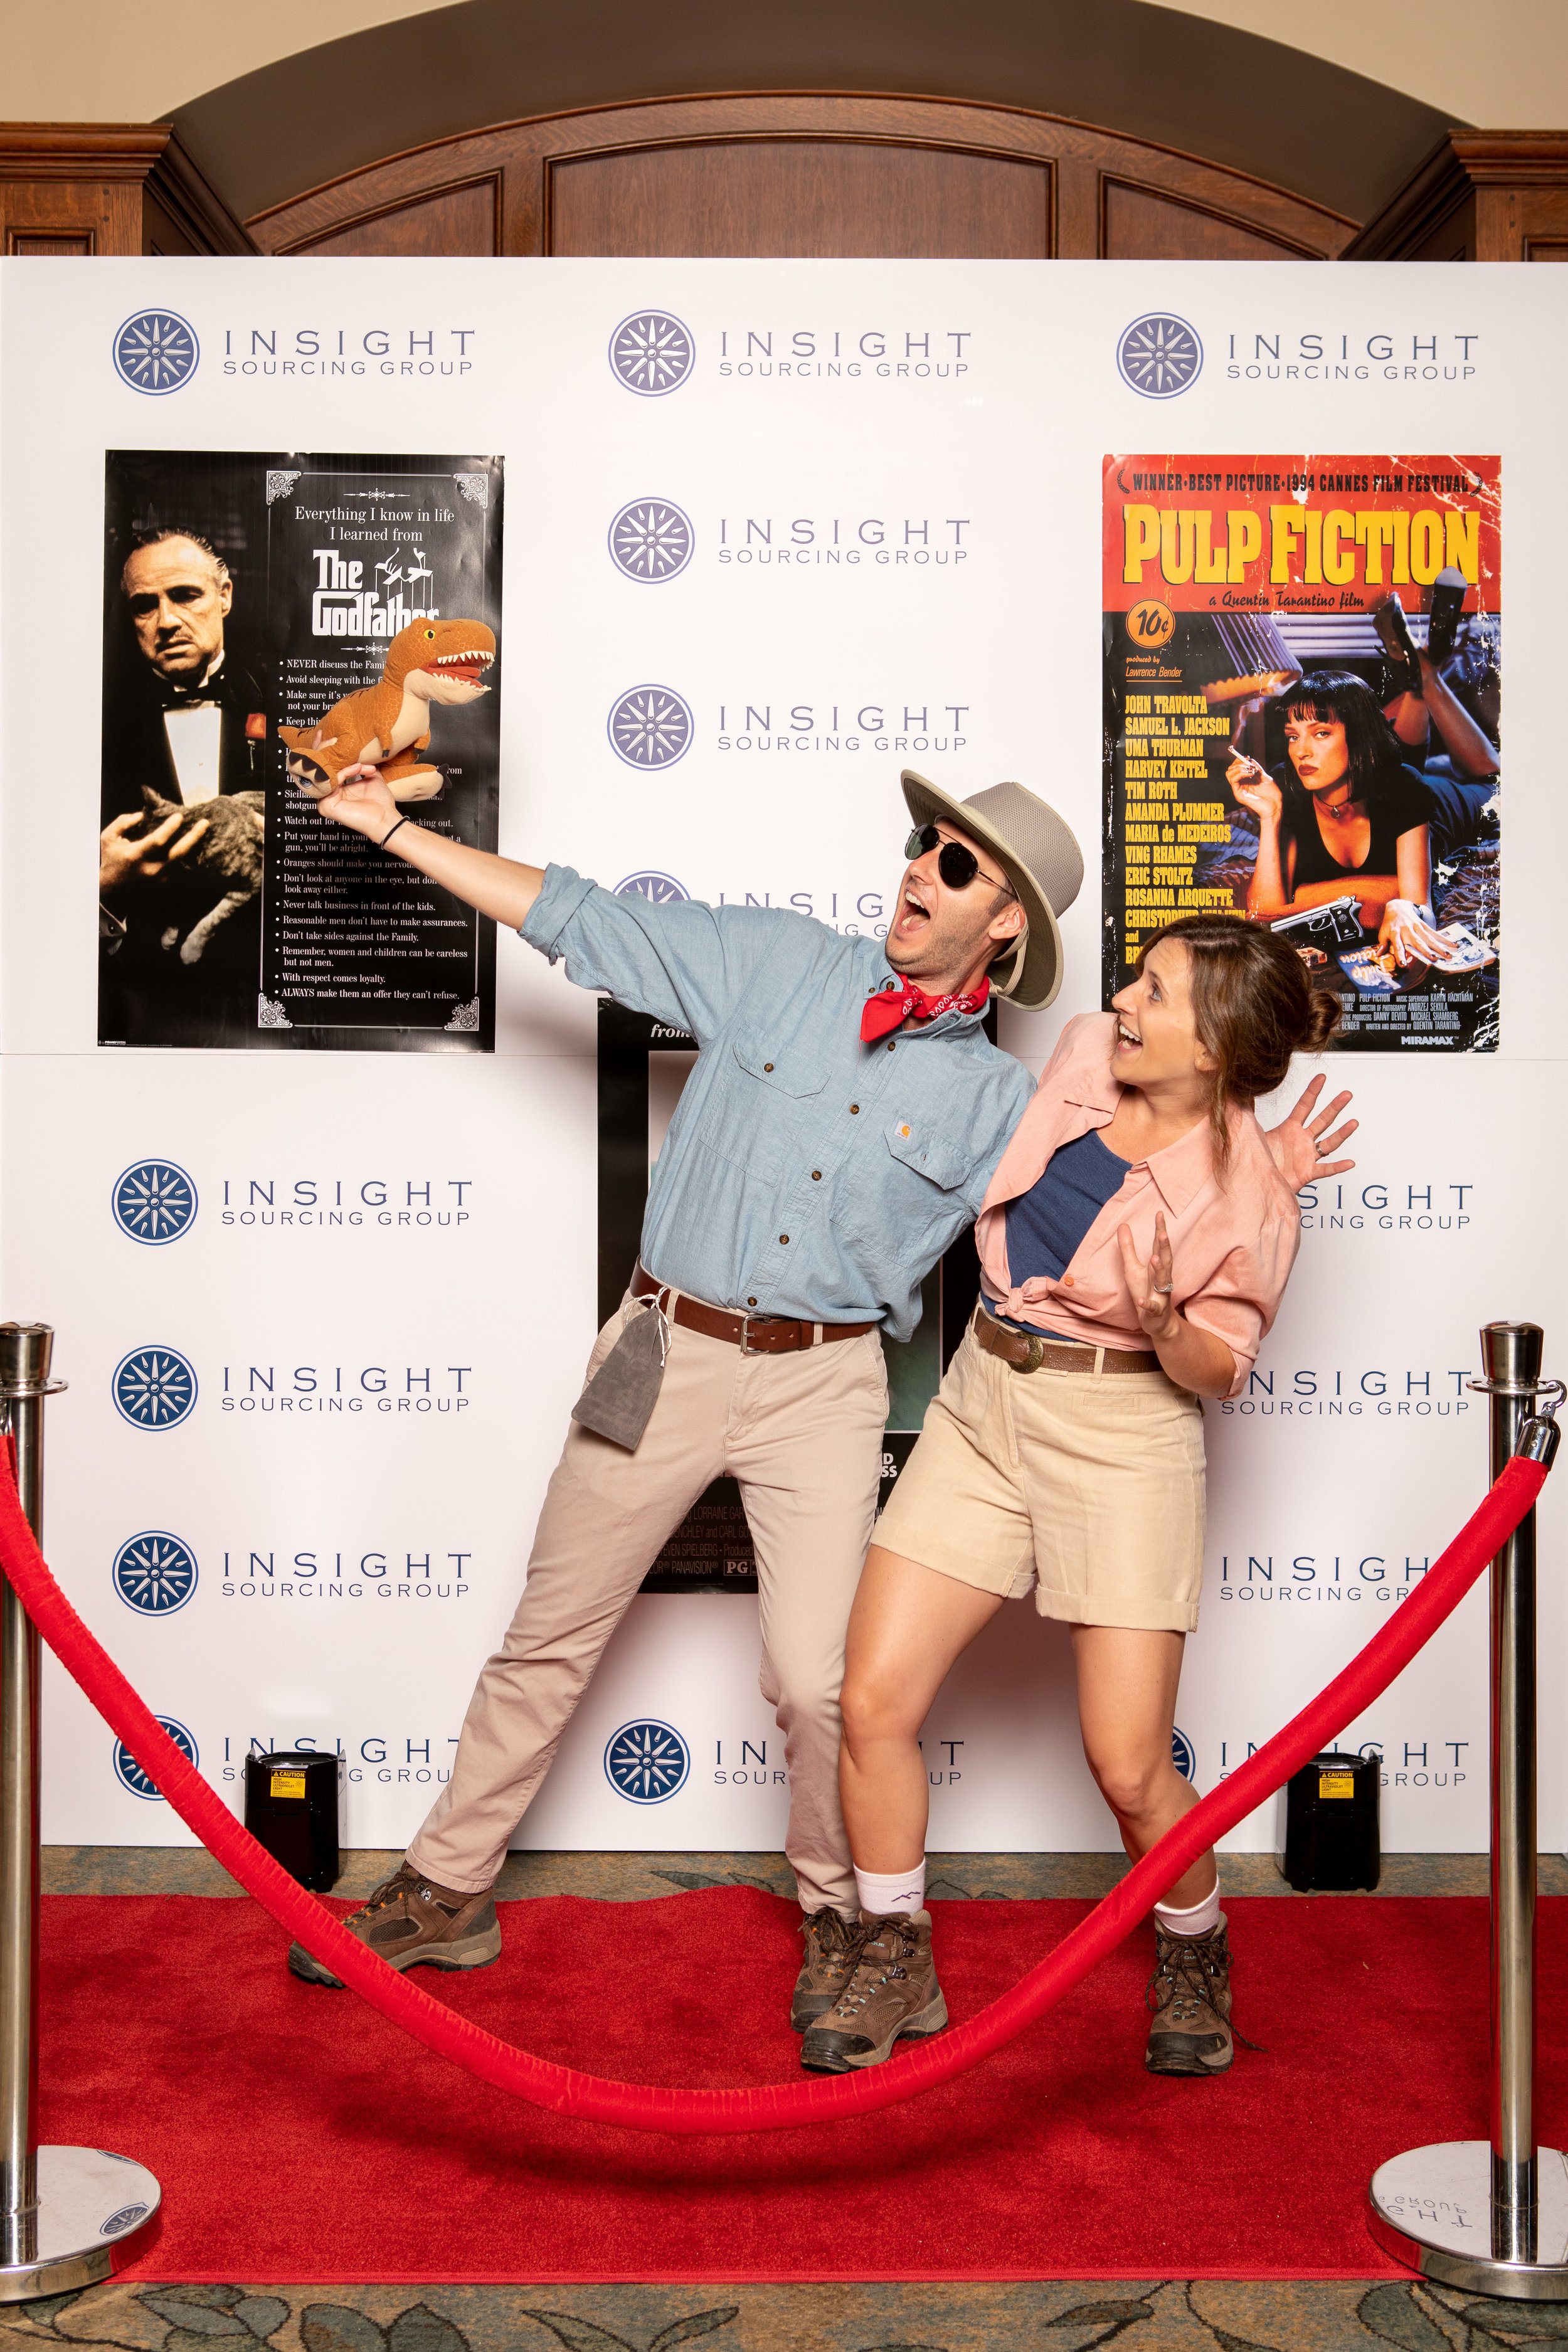 CatMax Photography Insight Photo Booth-5161.jpg